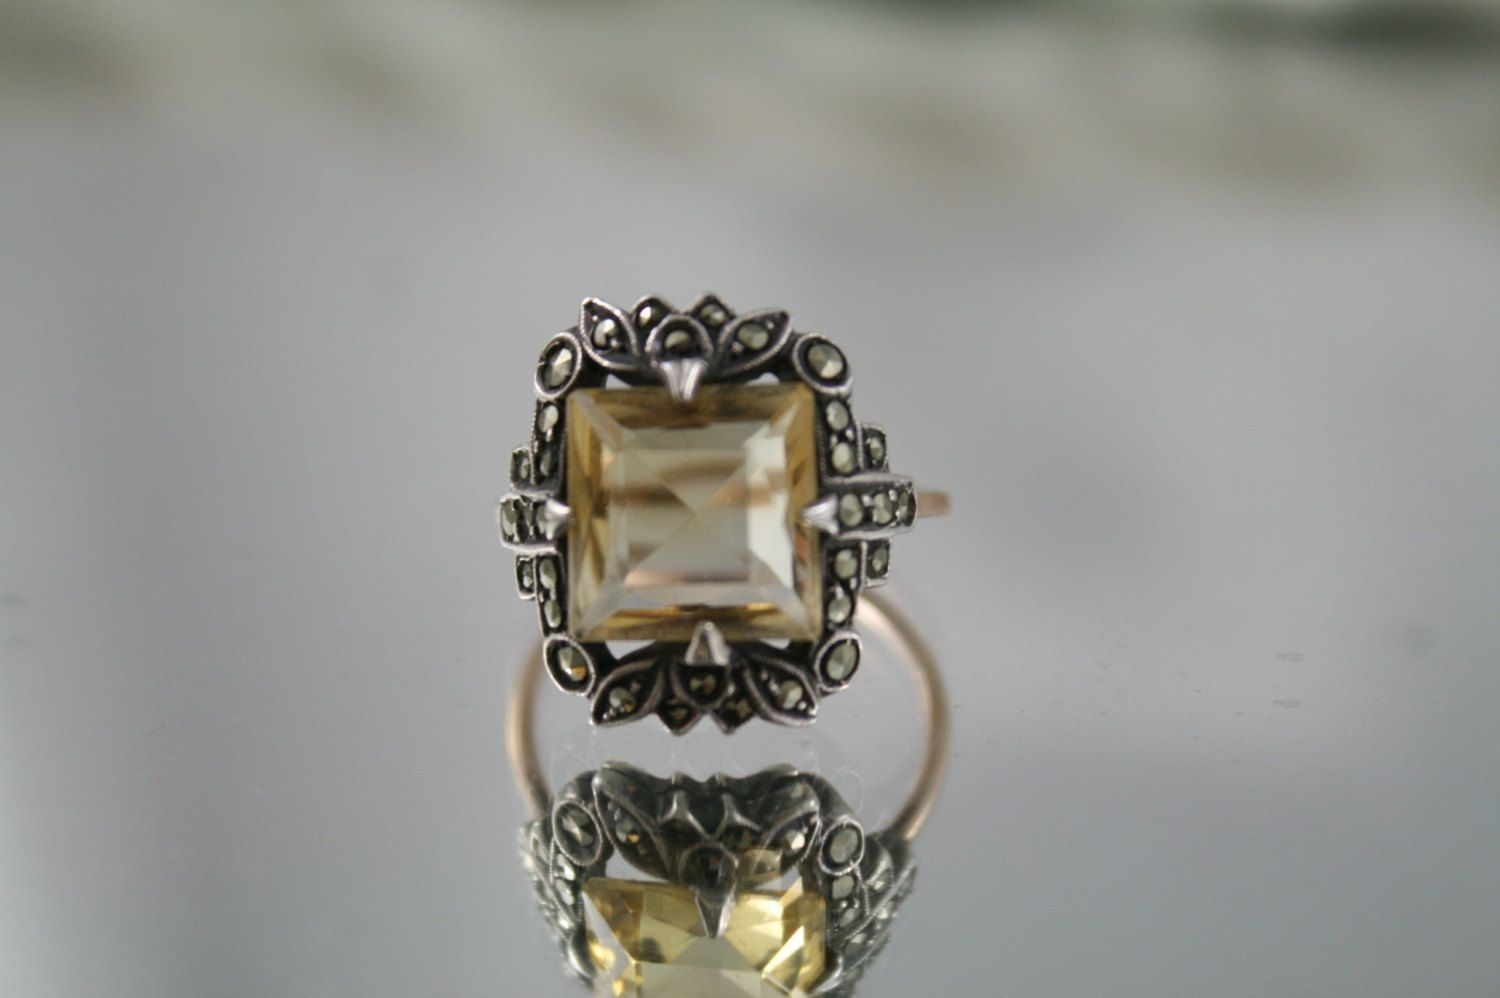 Antique Victorian Art Deco genuine solid 9k 375 rose gold ring, large 4 carat cut citrine silver setting marcasites USA size 7 by antiquevintagenstuff on Etsy